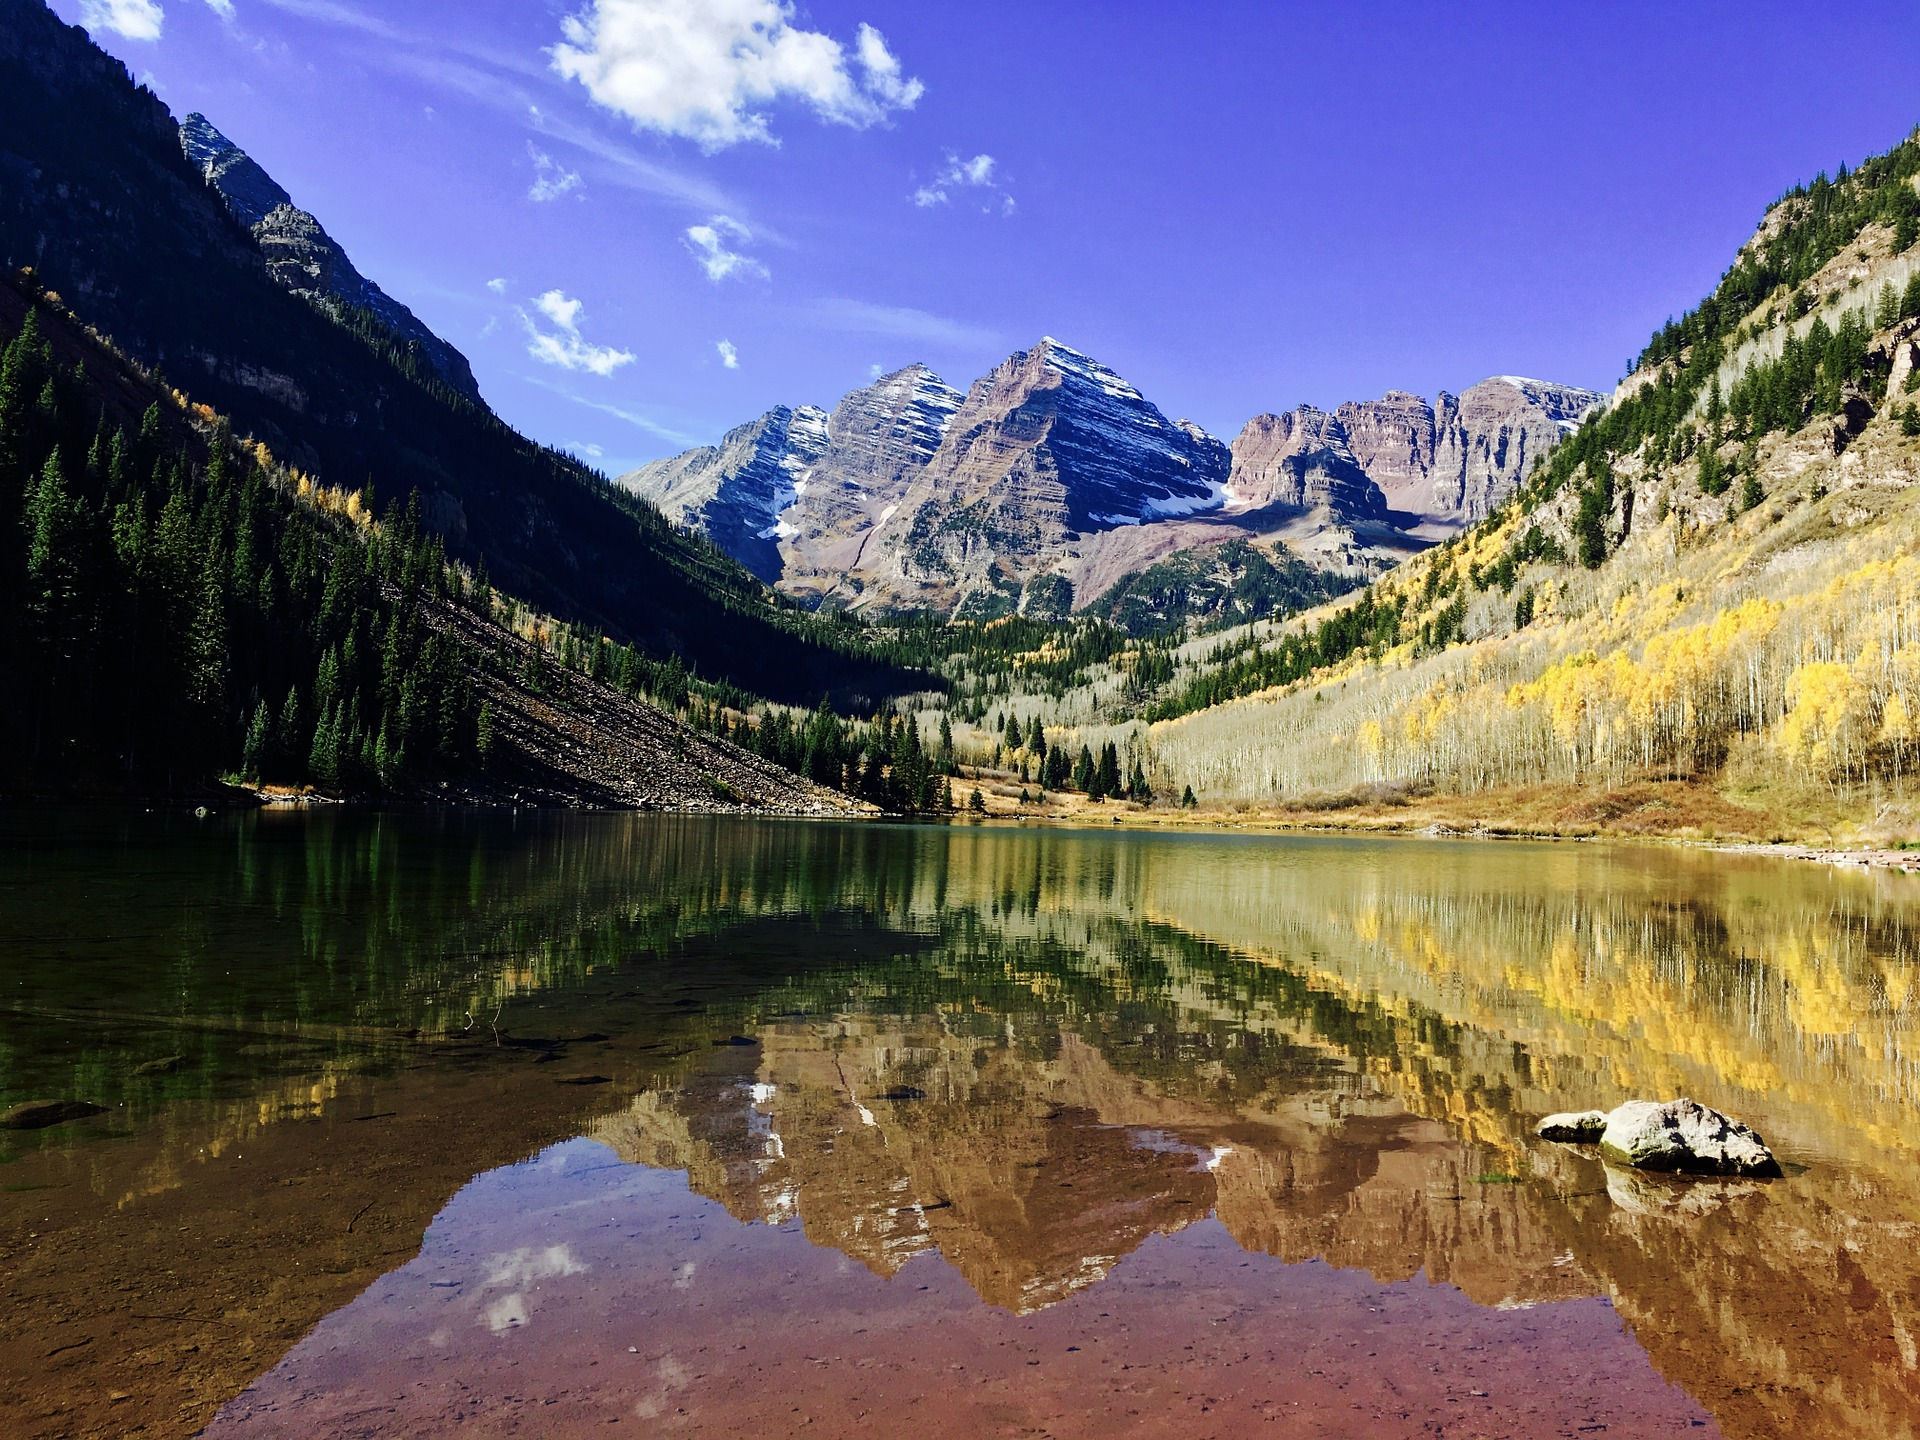 maroon bells is one of the most popular and best hiking trails in colorado